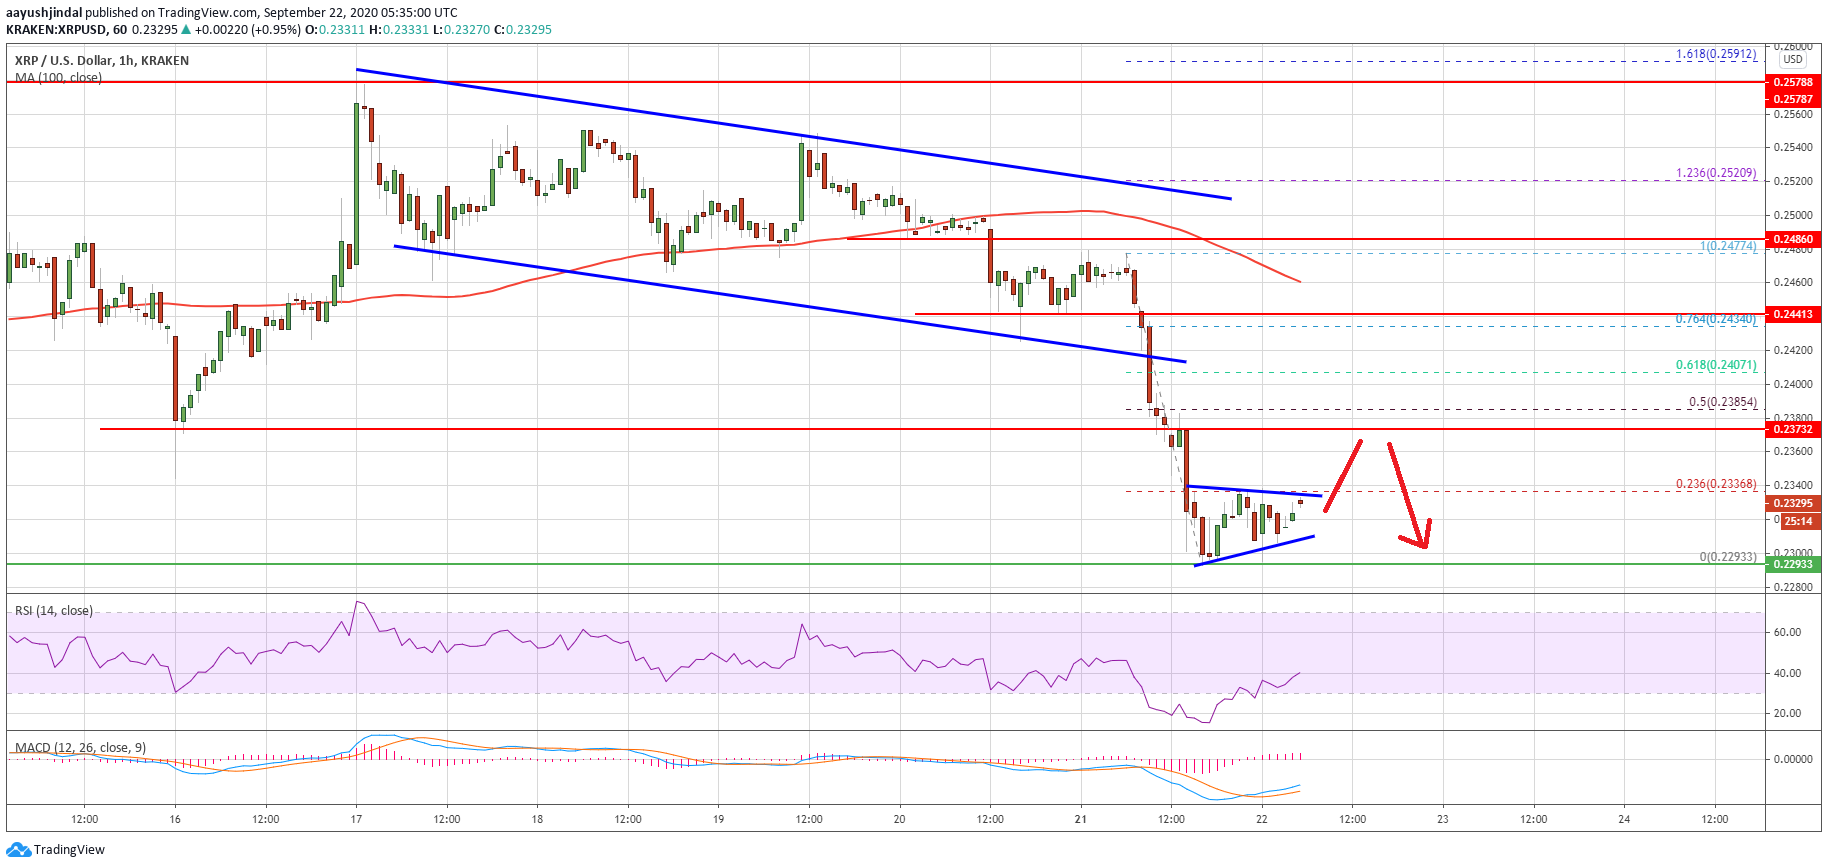 Ripple (XRP) Price Turns Red: Indicators Suggest Upsides Likely To Remain Capped